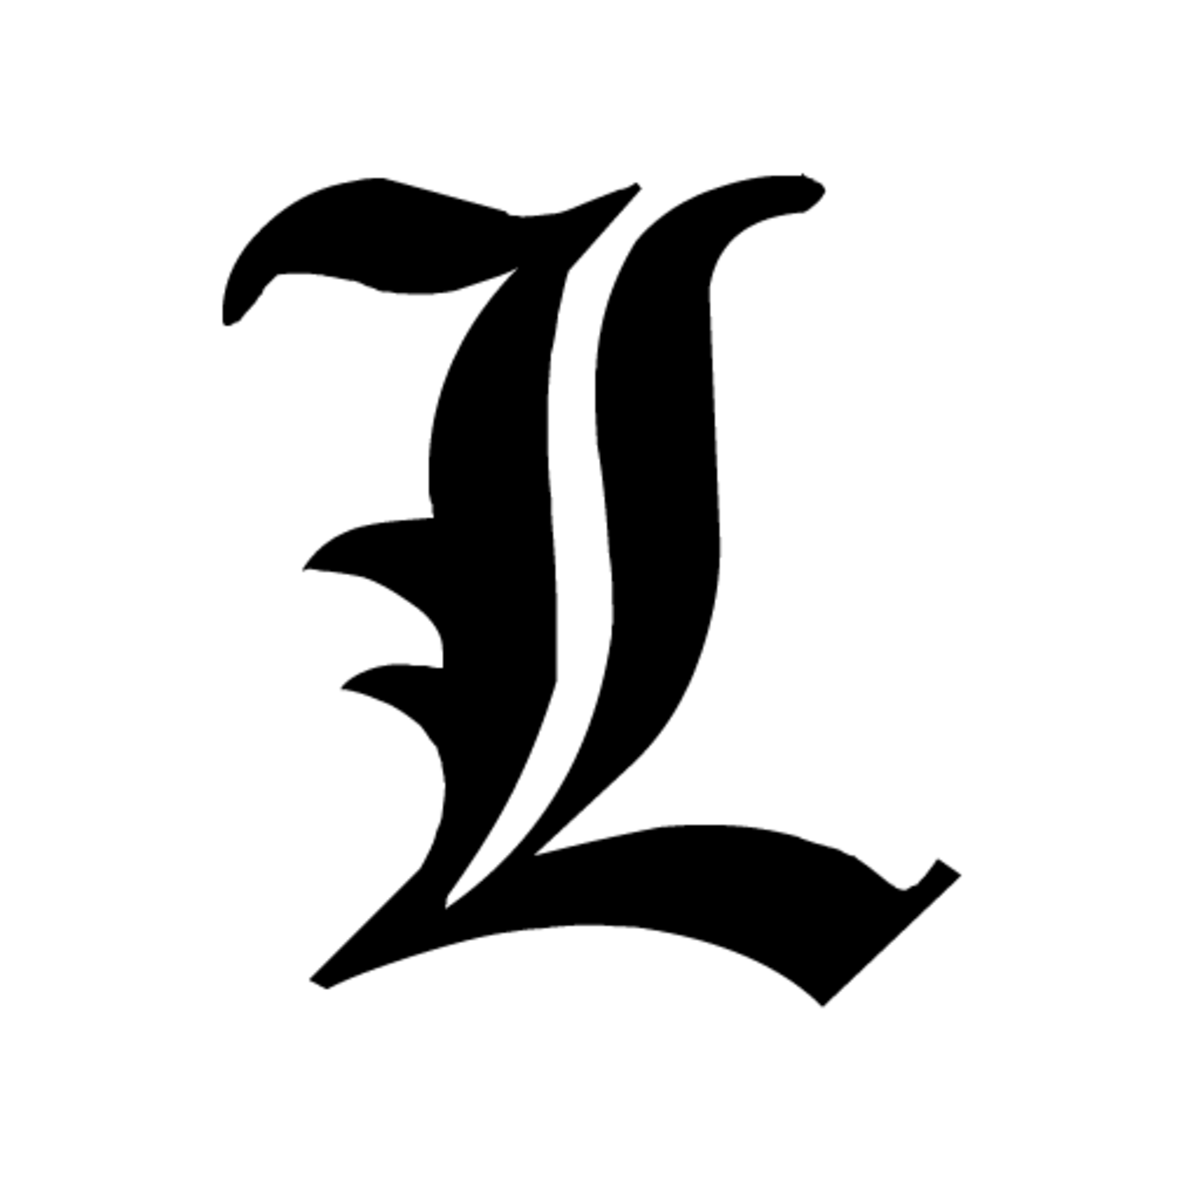 Lawliet goes undercover by the letter L, shown on screen during messages in Old English font.